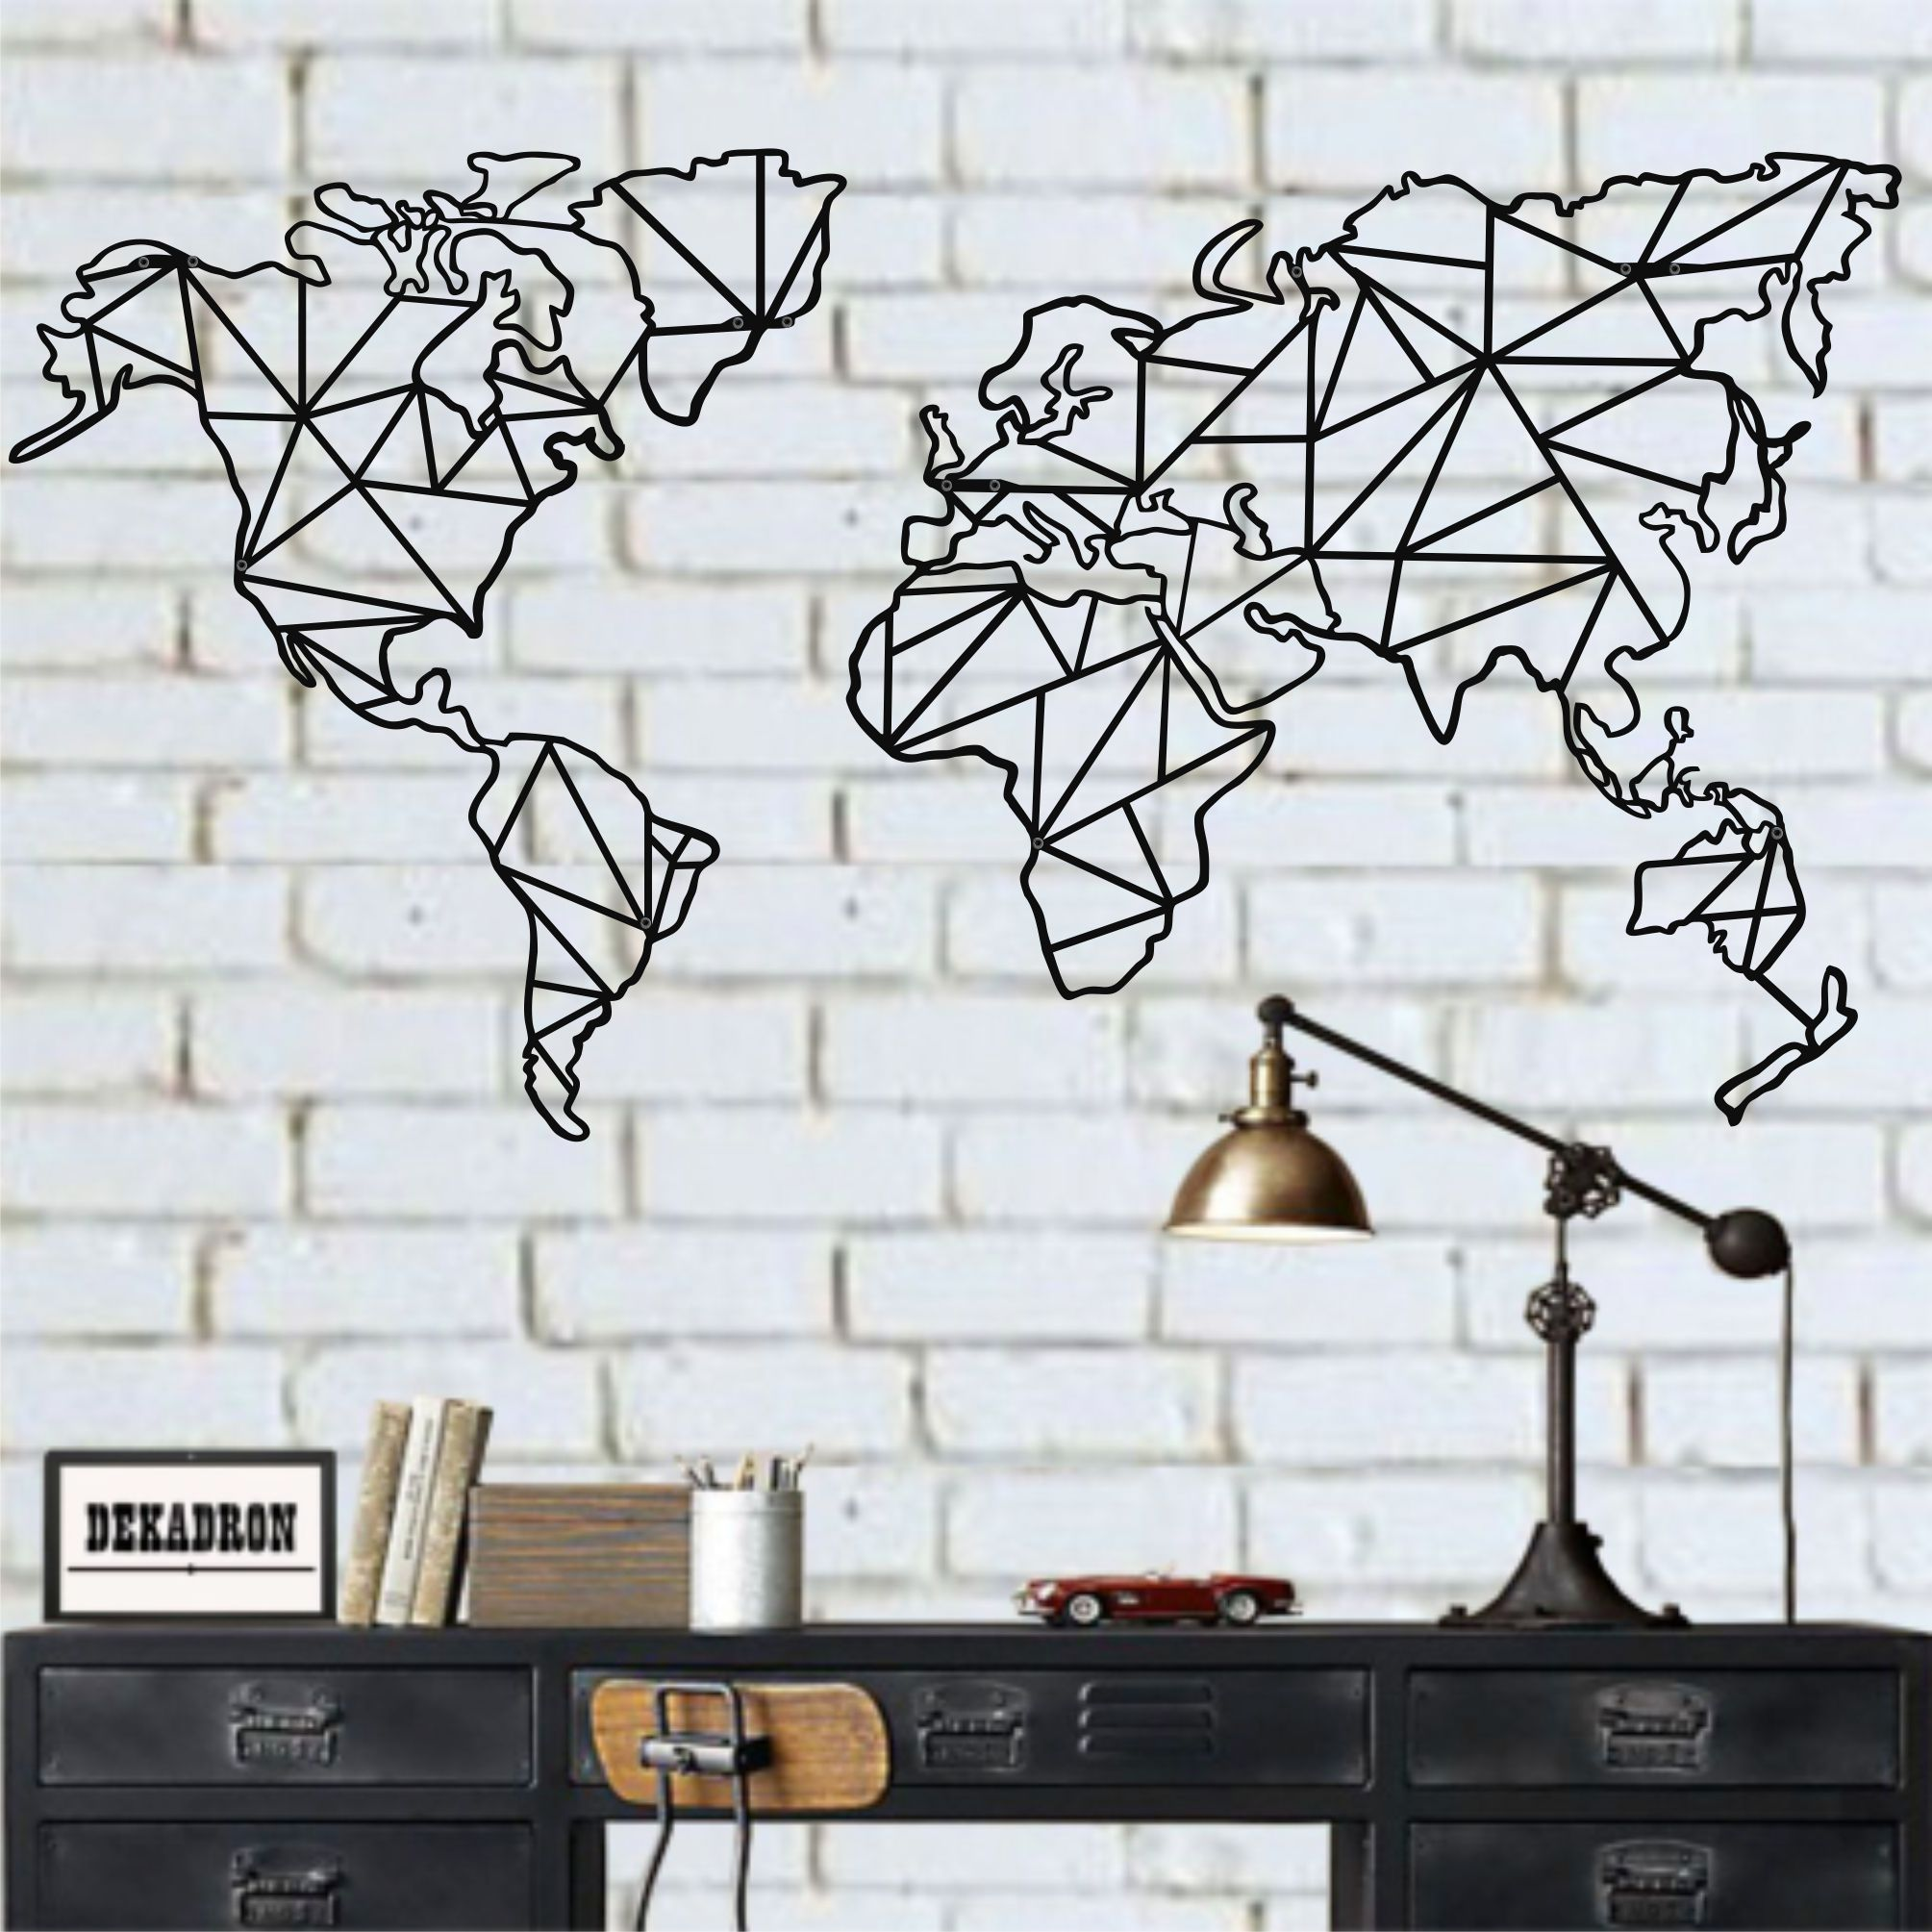 Metal World Map Wall Art, 2 Pieces Geometric World Map, Metal Wall Decor, Metal Sign, Home Office Decoration